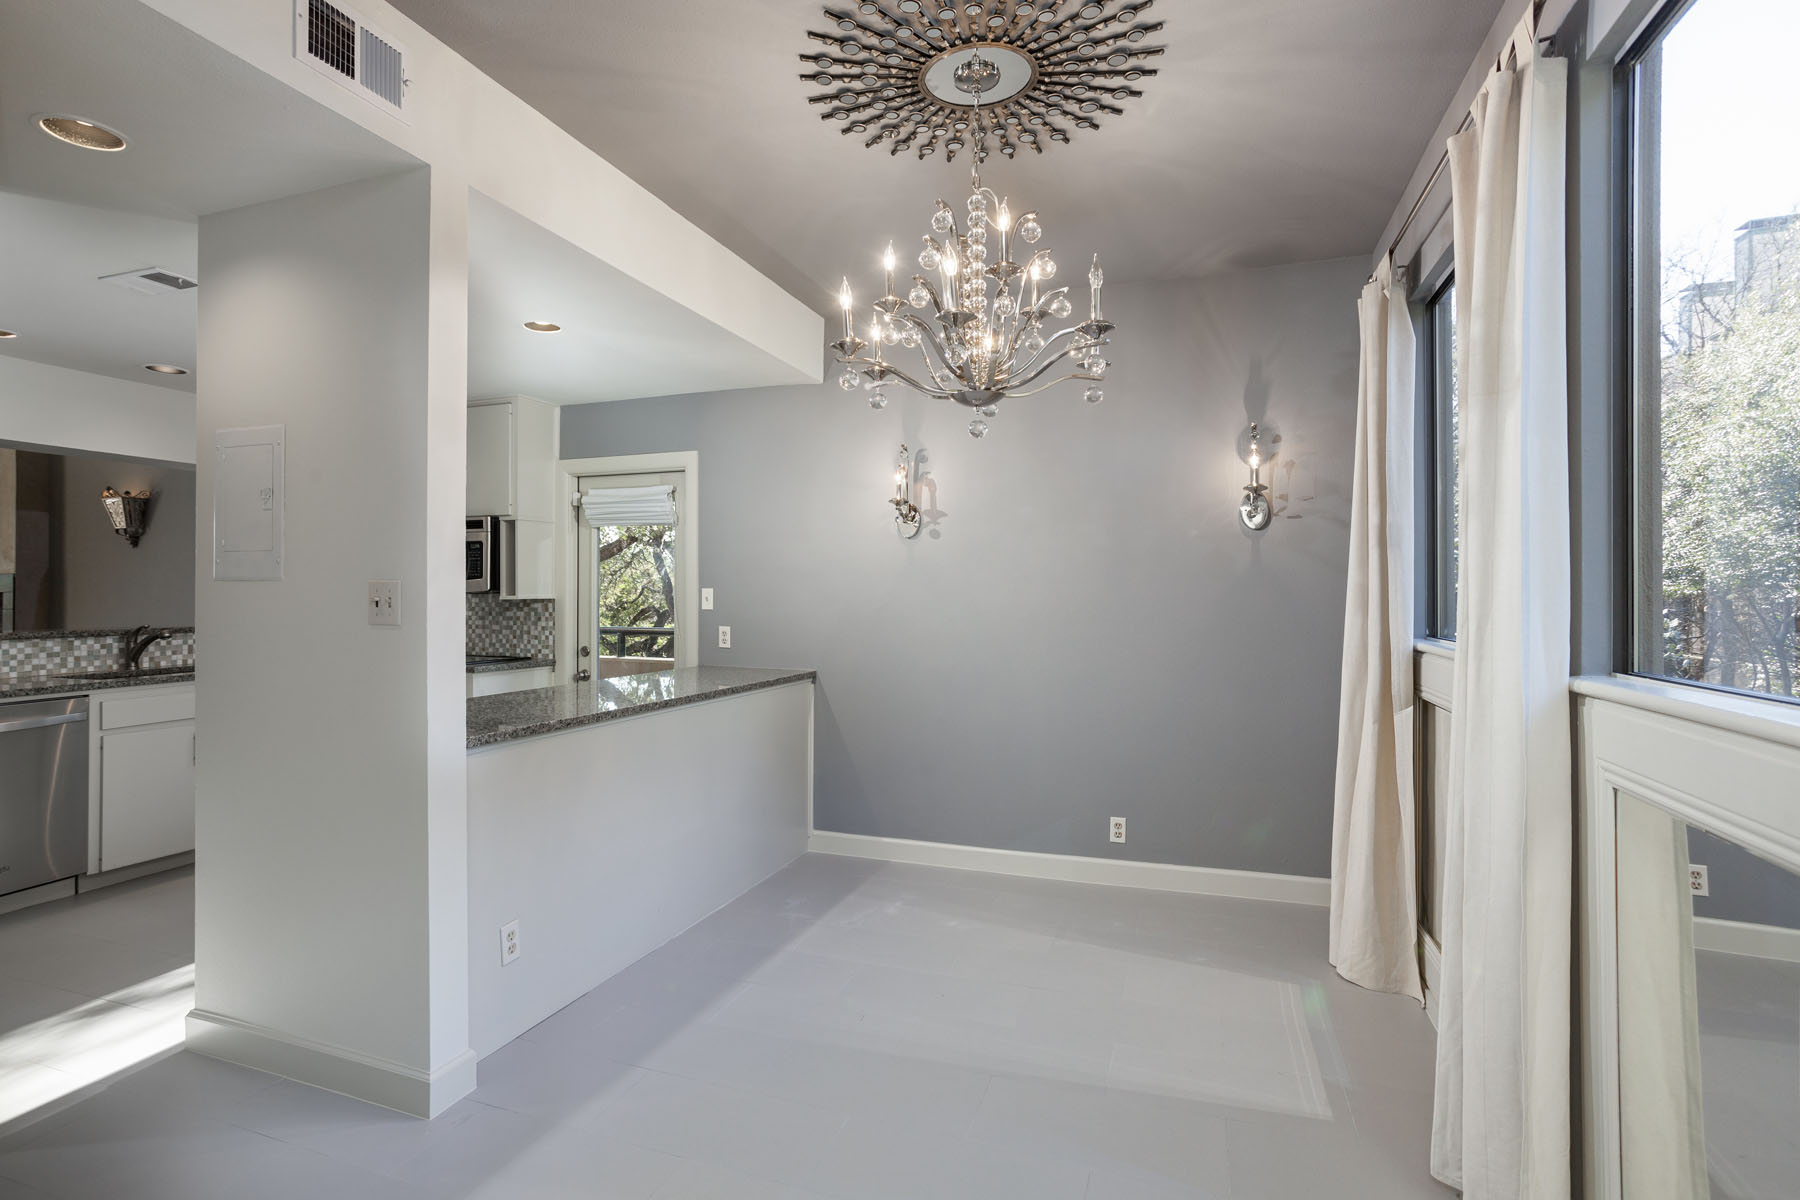 Other Residential for Rent at Stunning Luxury Lease 1707 Spyglass Dr 124 Austin, Texas 78746 United States